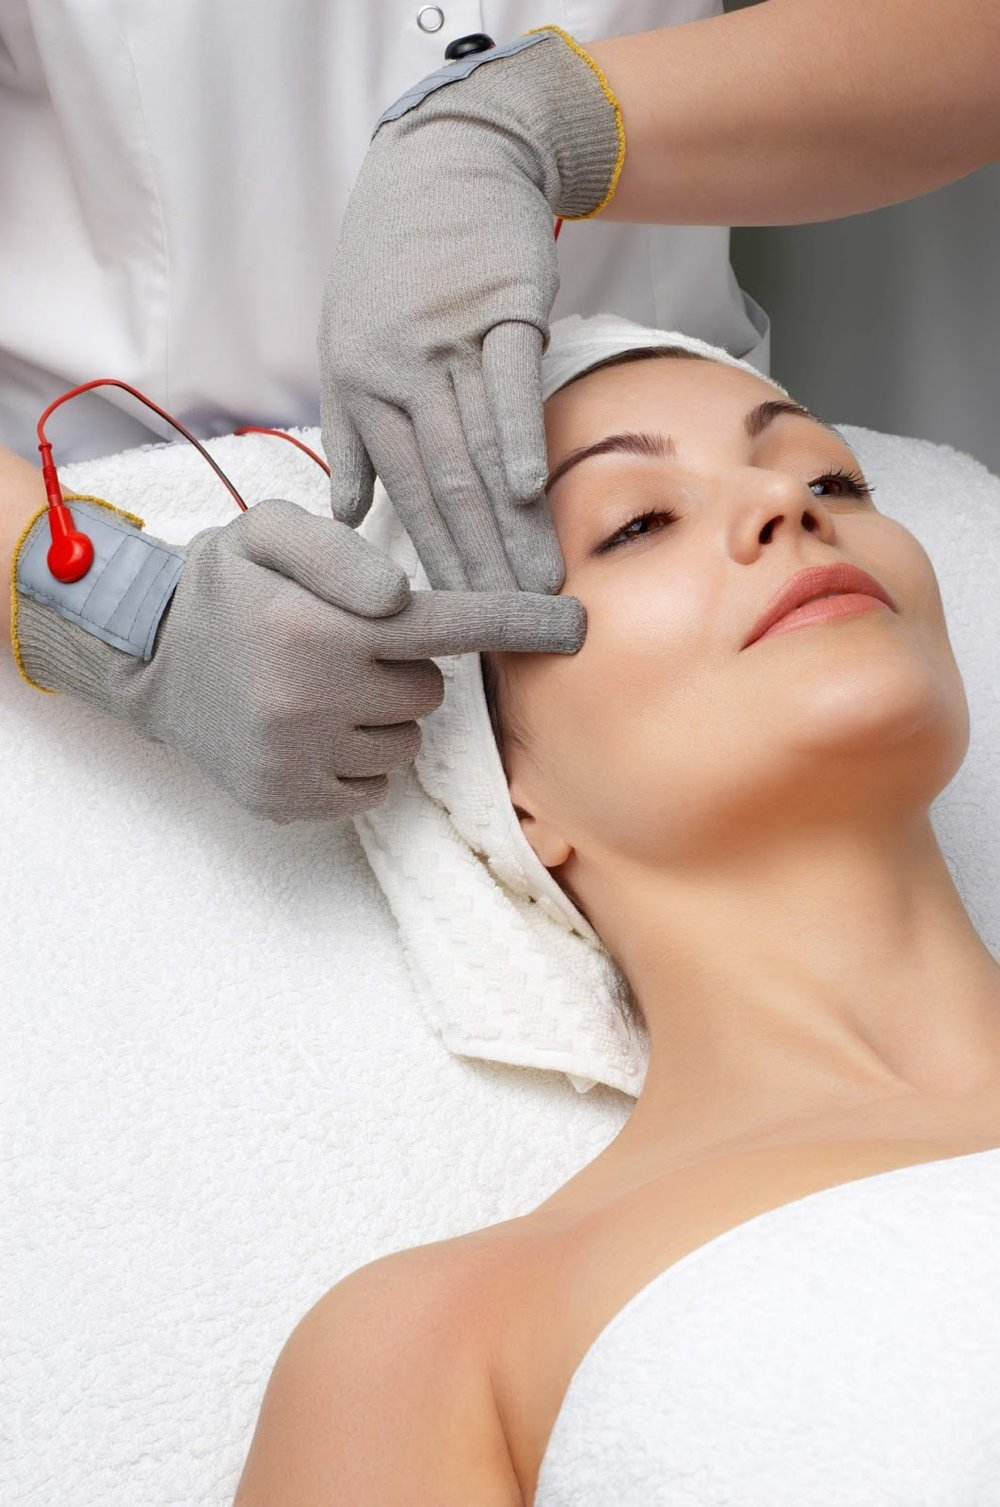 Benefit of Microcurrent - Lift of jowls and eyebrows-Lymphatic drainage-Improved skin texture-Skin pigment improvement-Product penetration-Smoother, firmer skin-Hydrated and revitalized skin-Improved elasticity